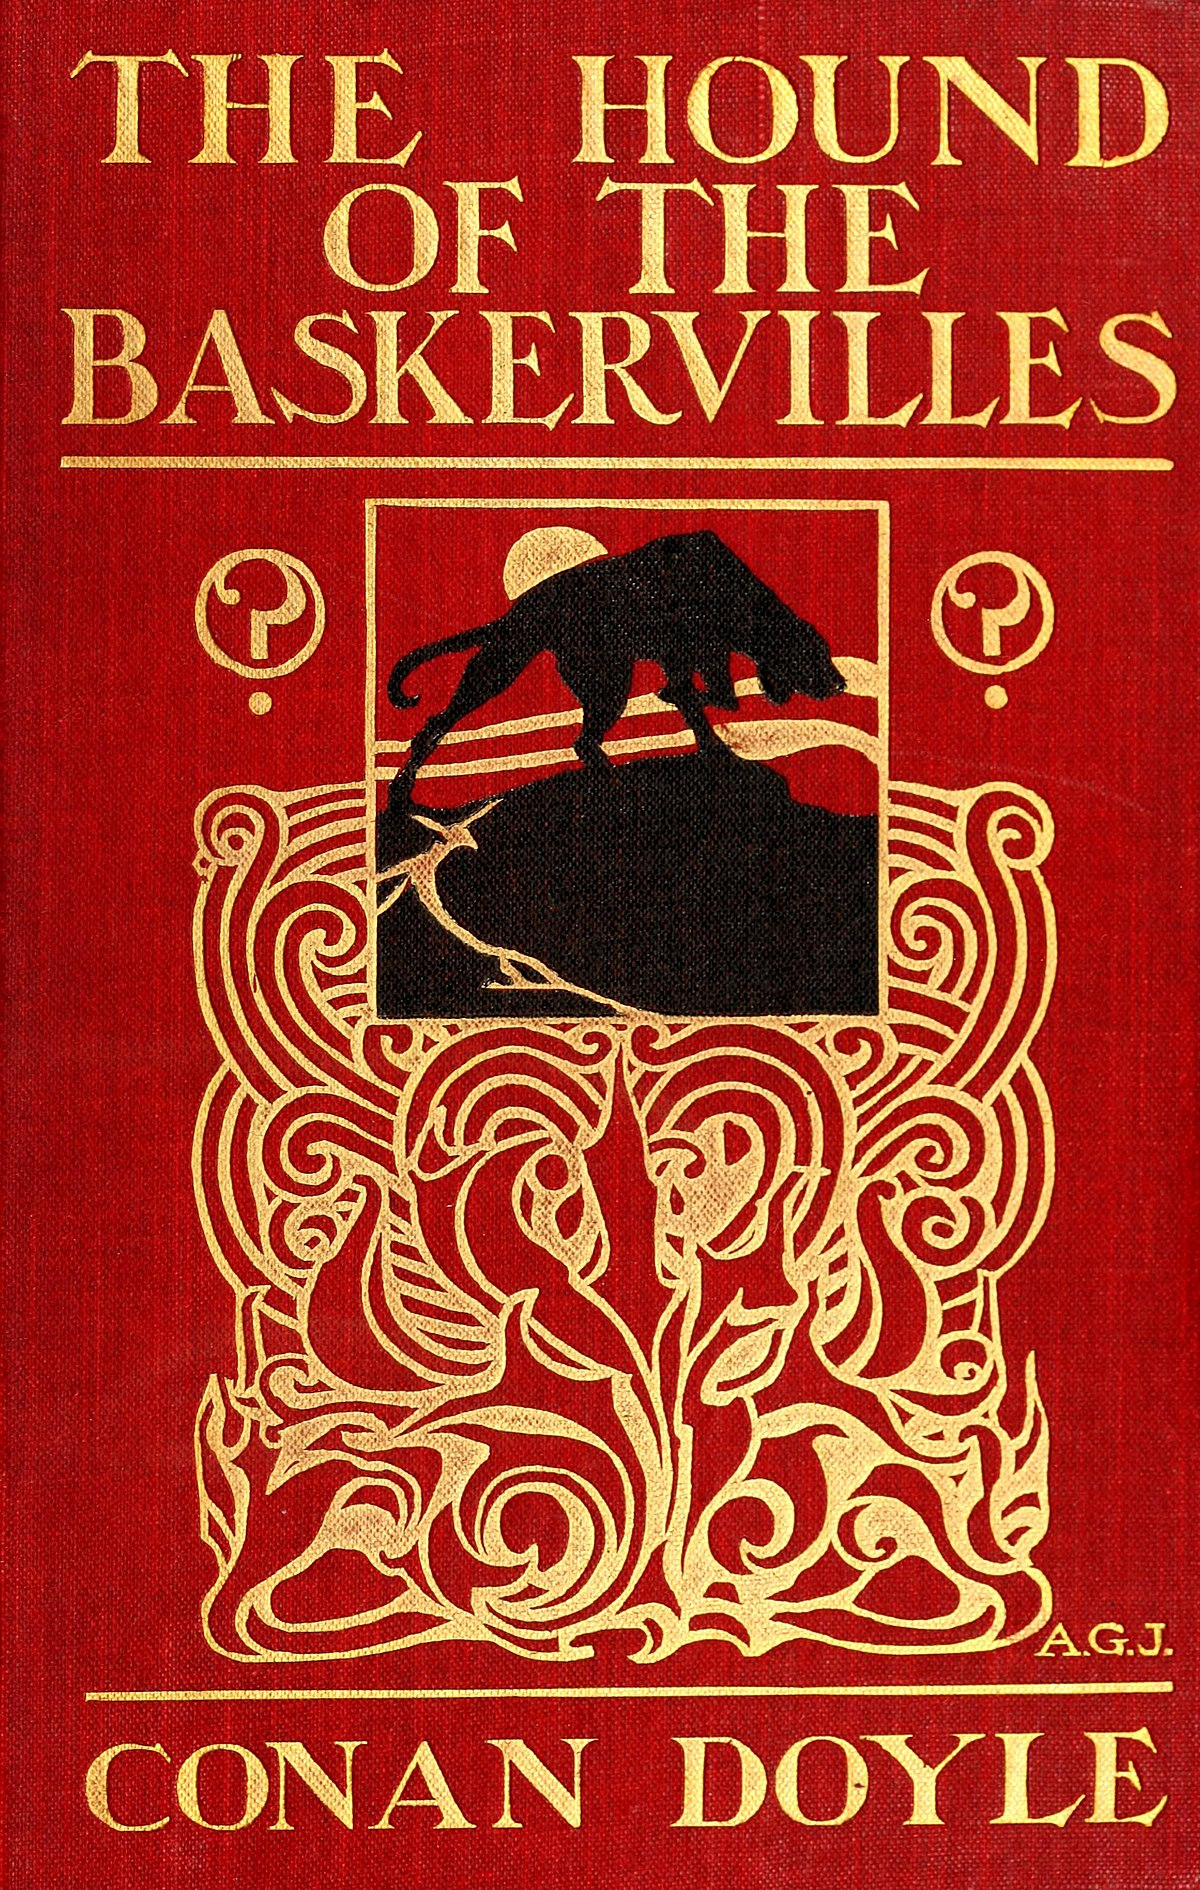 Bilderesultat for the baskerville hound